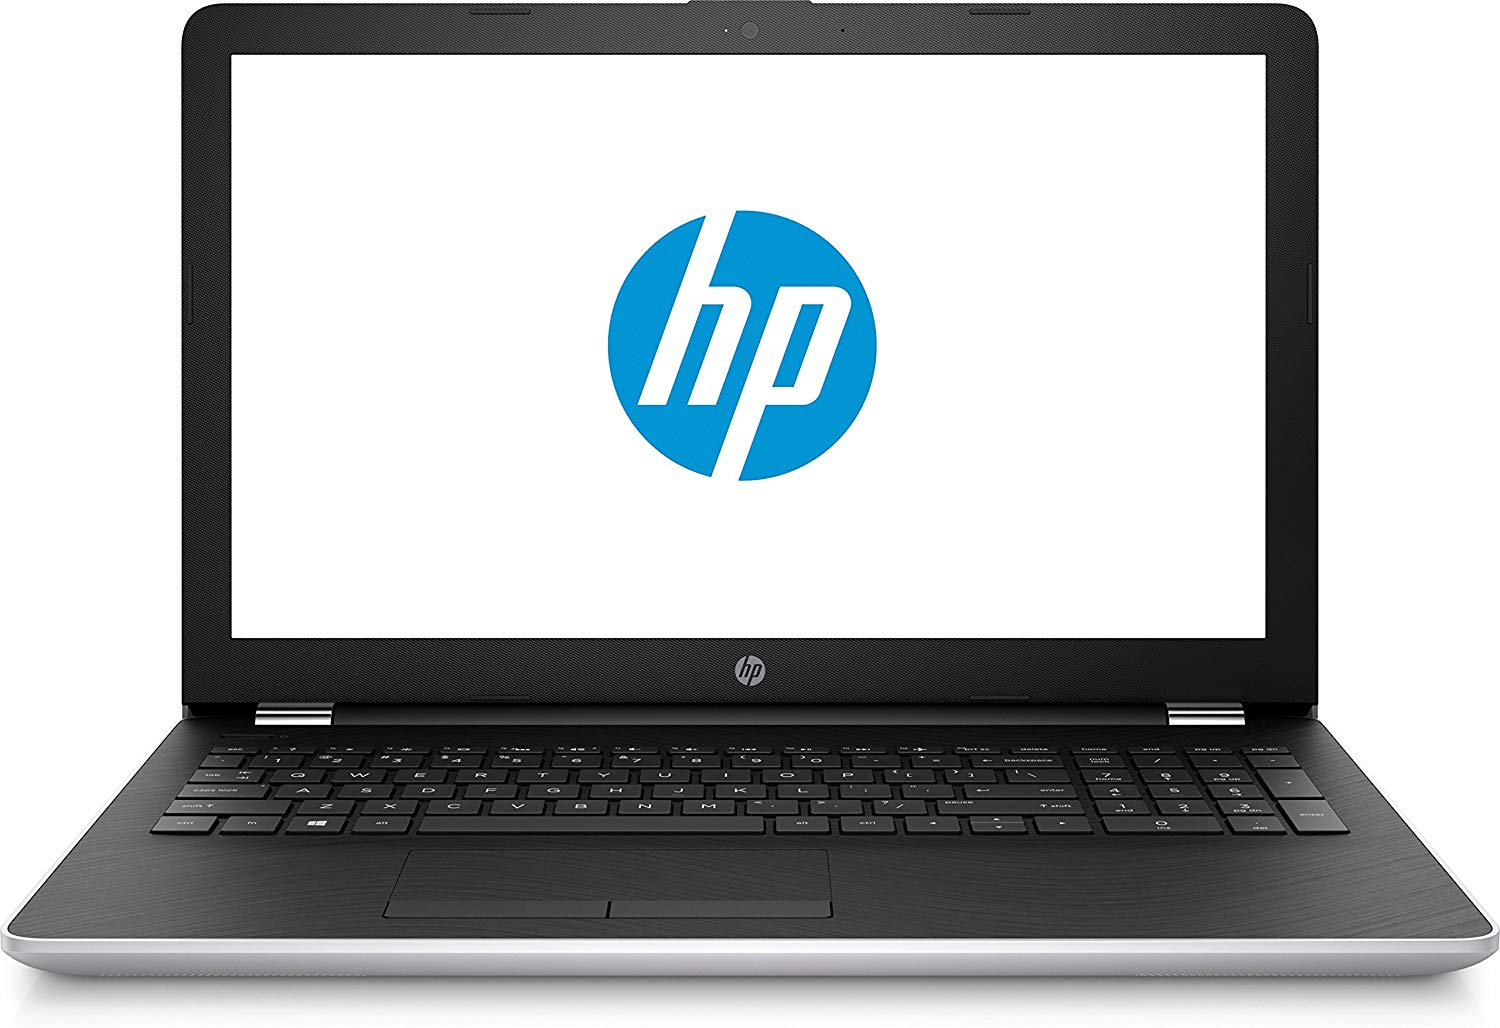 "HP 15-da0434TX 15.6-inch Laptop (7th Gen Core i3 7100U/ 4GB/ 1TB/Window 10/ 2GB Nvidia MX110 Graphic/ 15.6"" Full HD/ Natural Silver)"